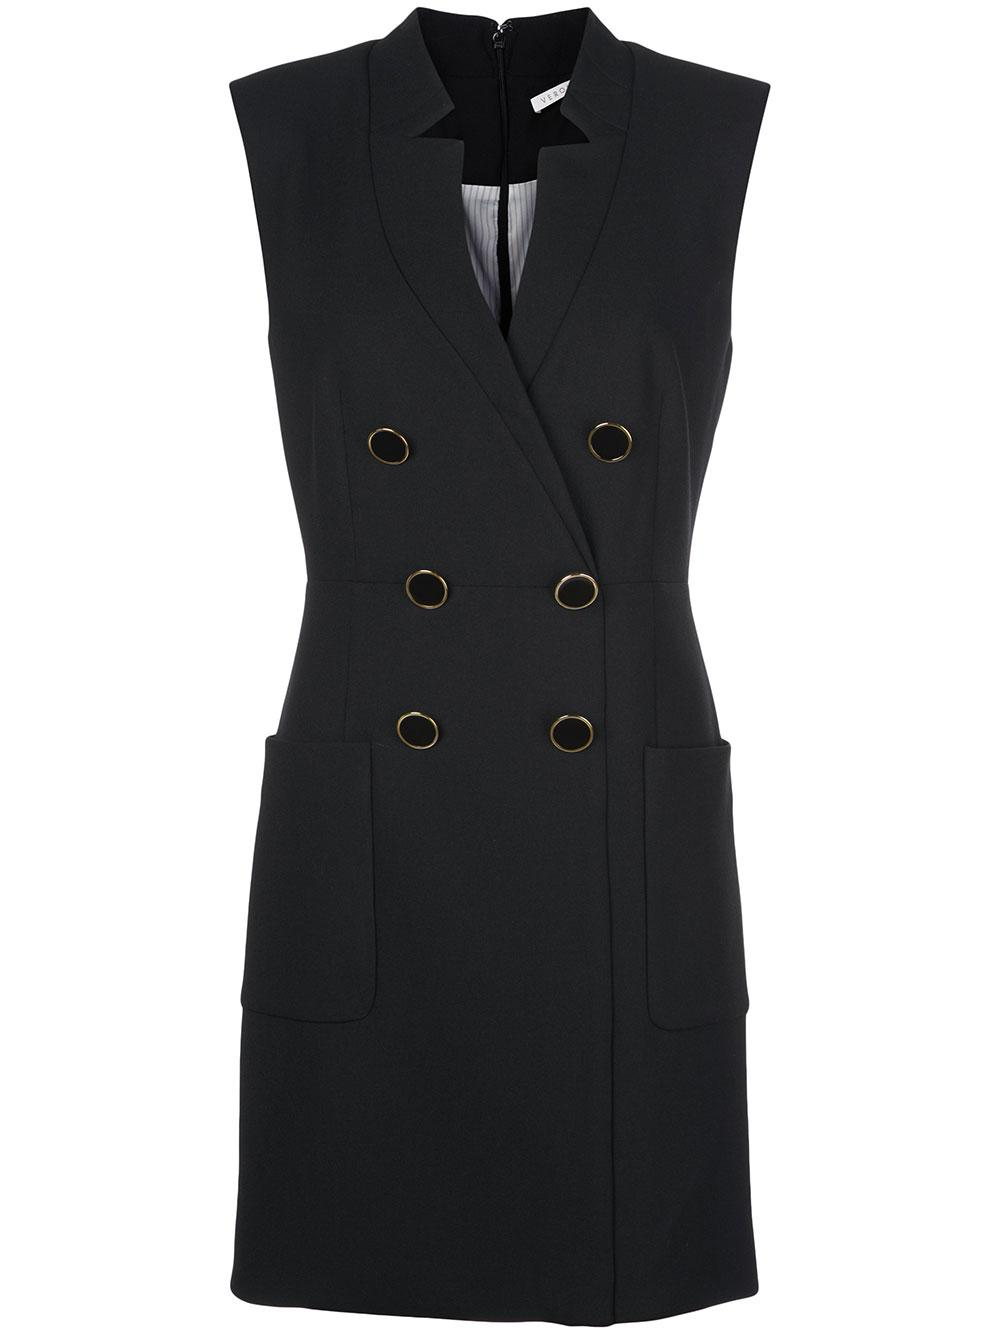 Doreen Cap Sleeve Double Breasted Blazer Dress